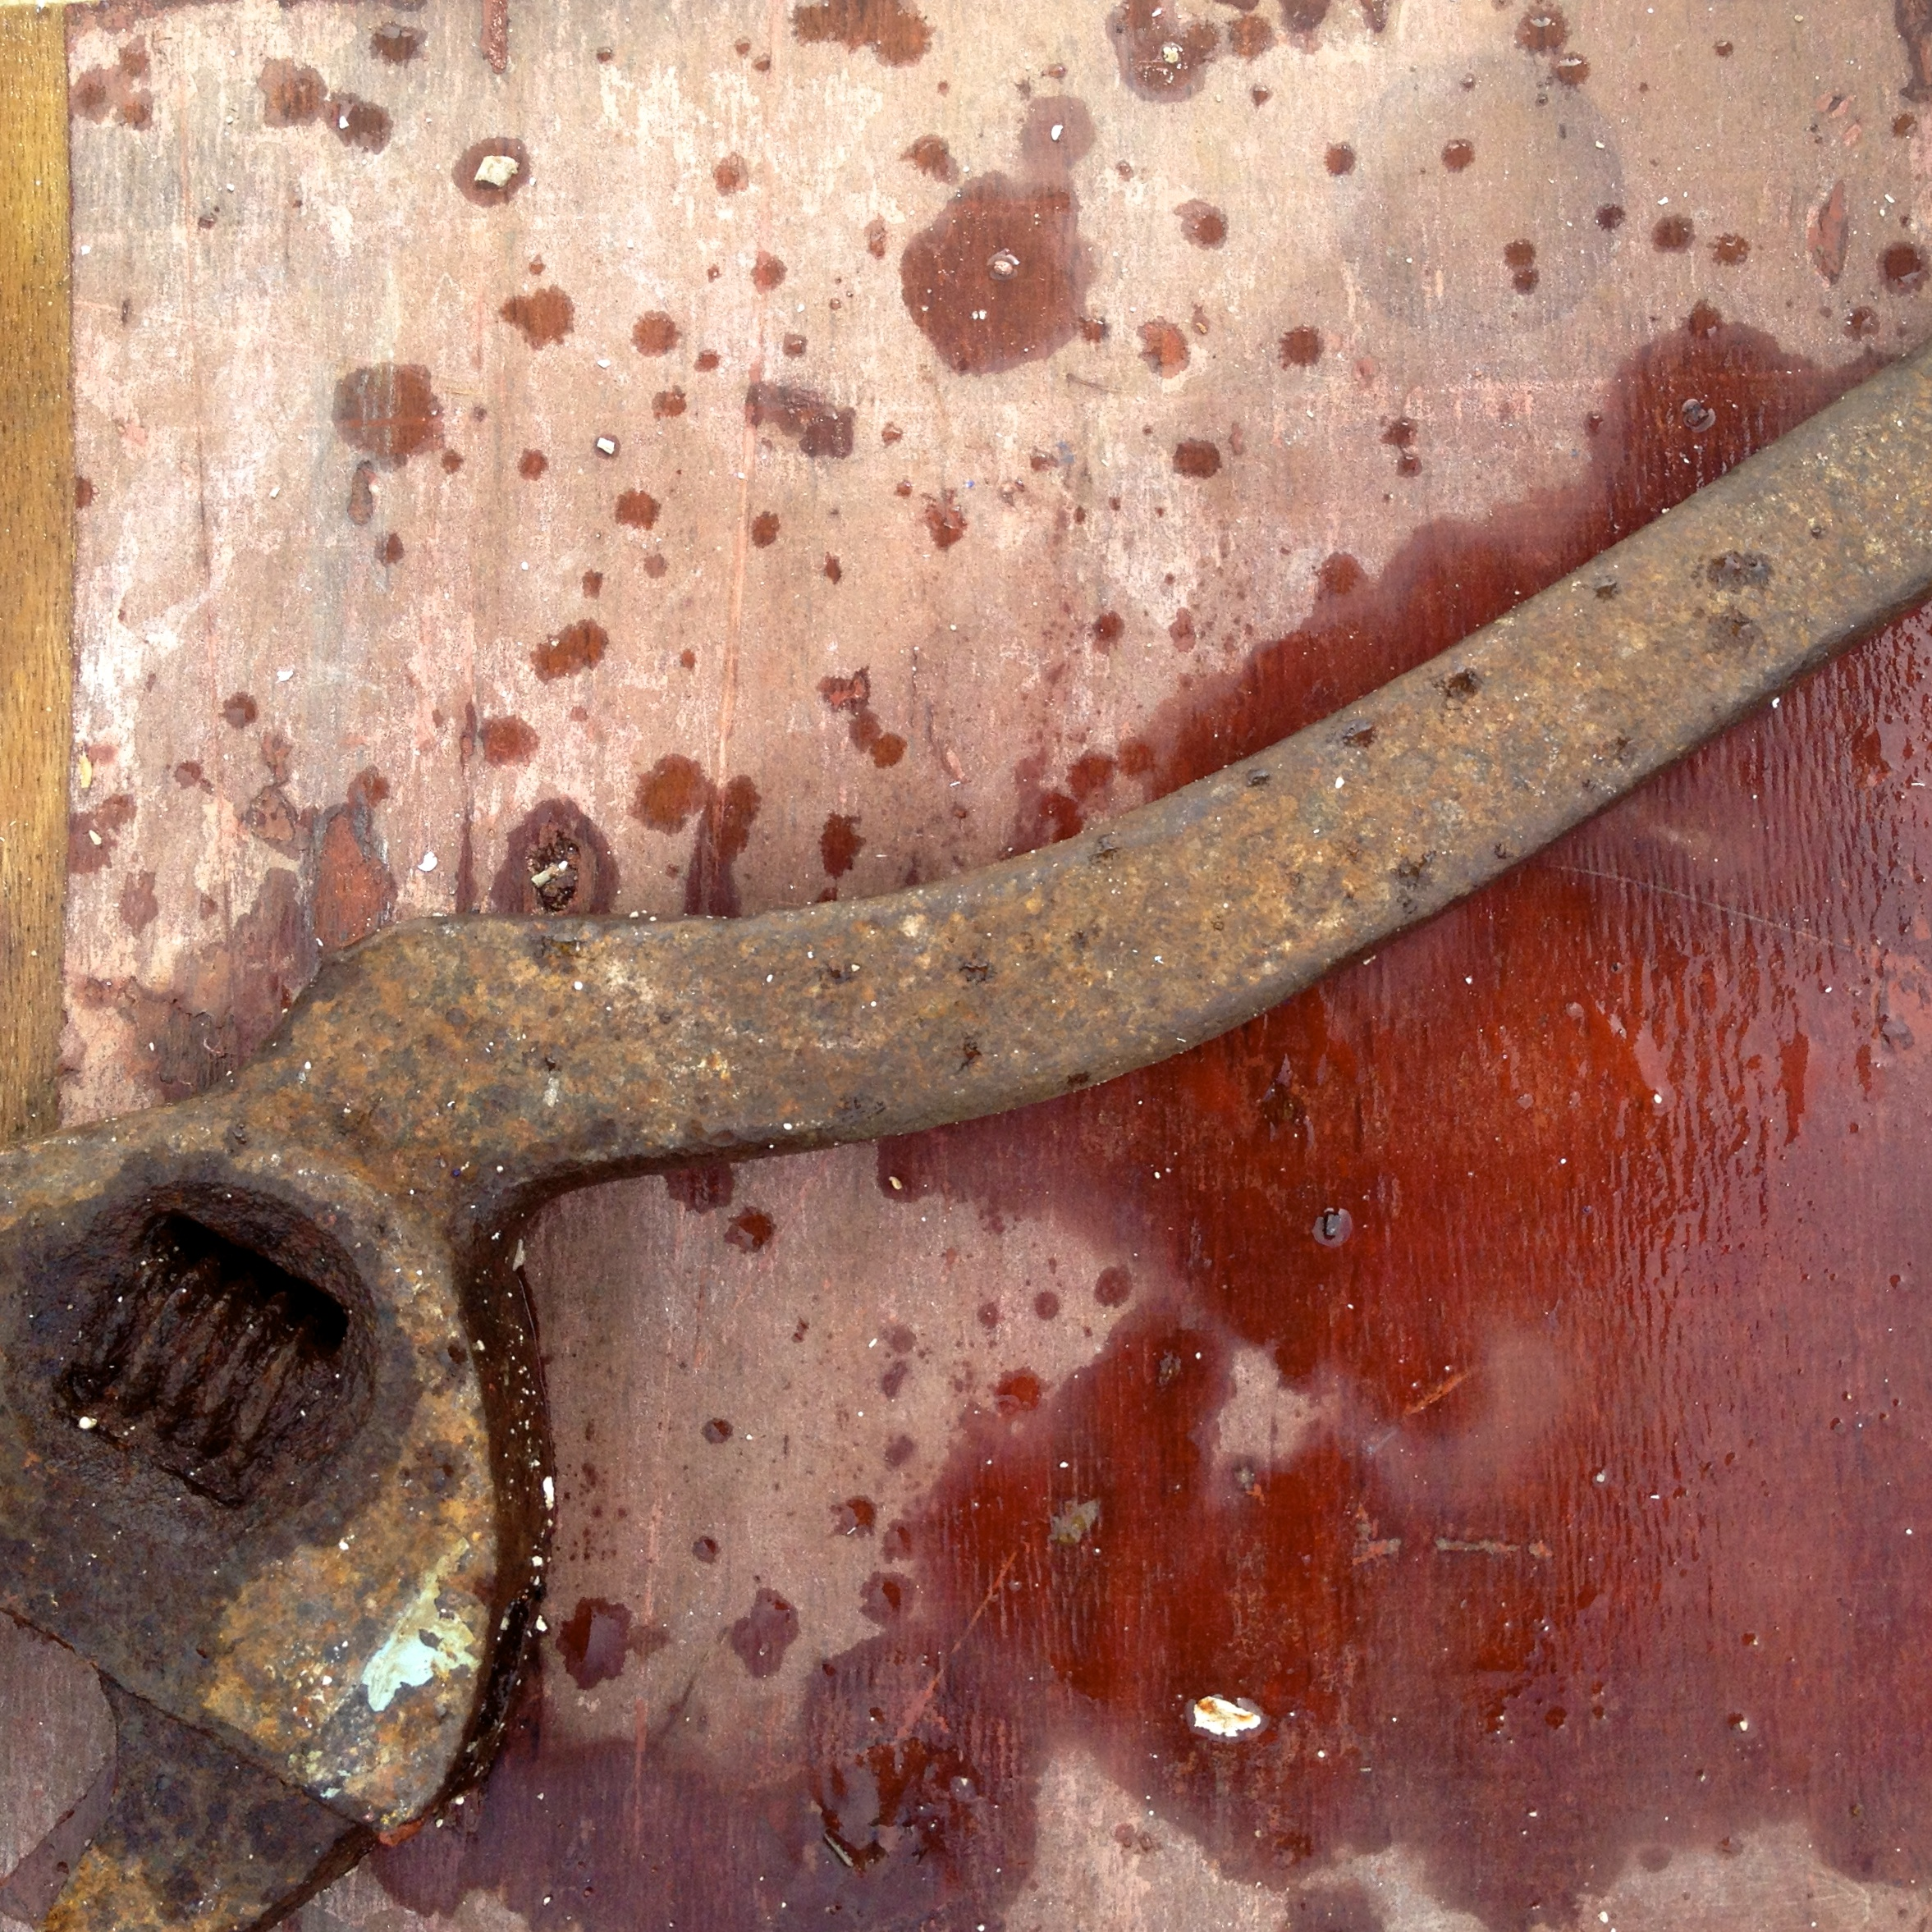 Dock Wrench, Tkon, Croatia